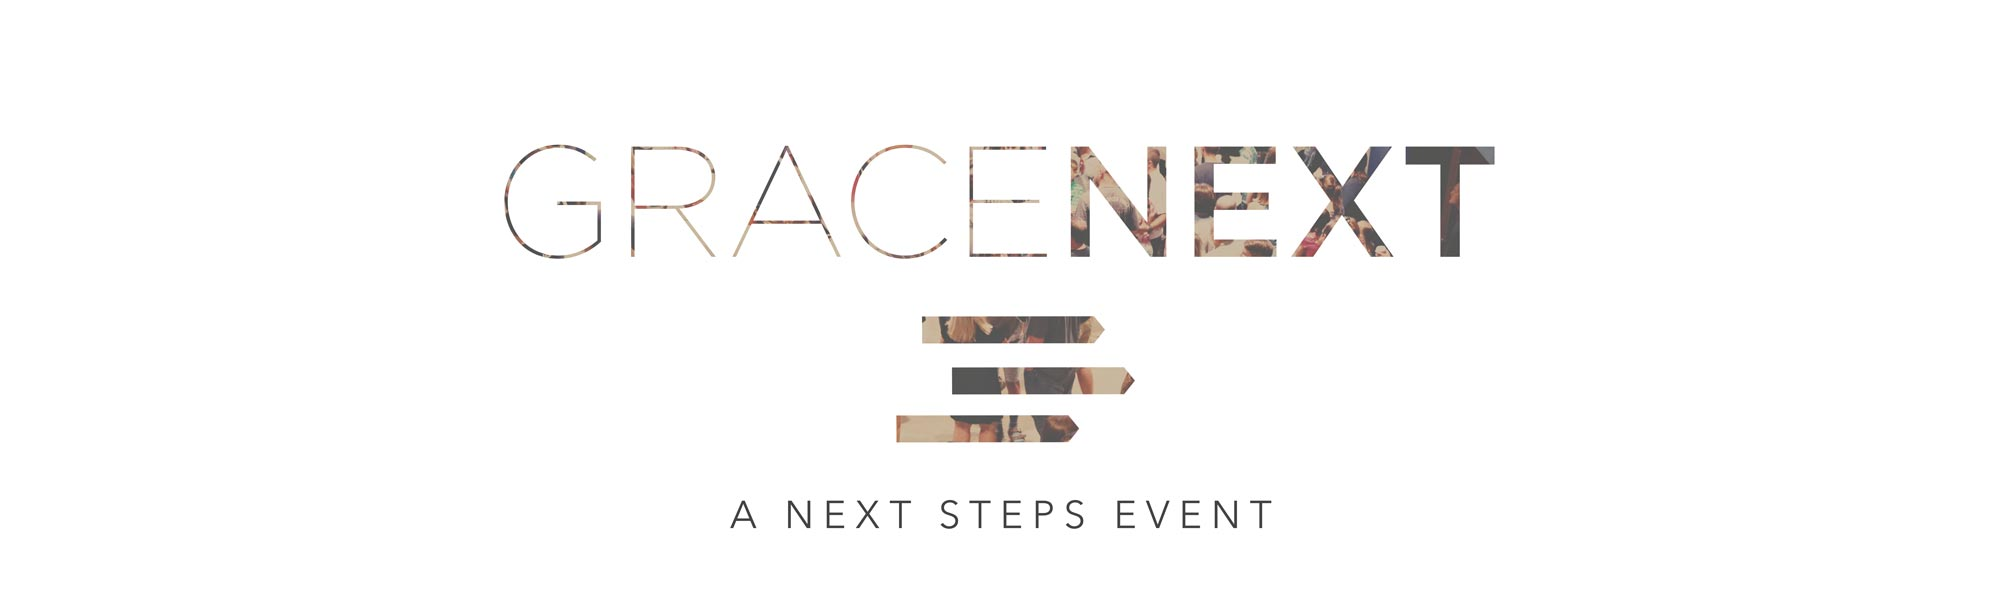 Grace Next - A Next Steps Event - Membership - Grace Community Church